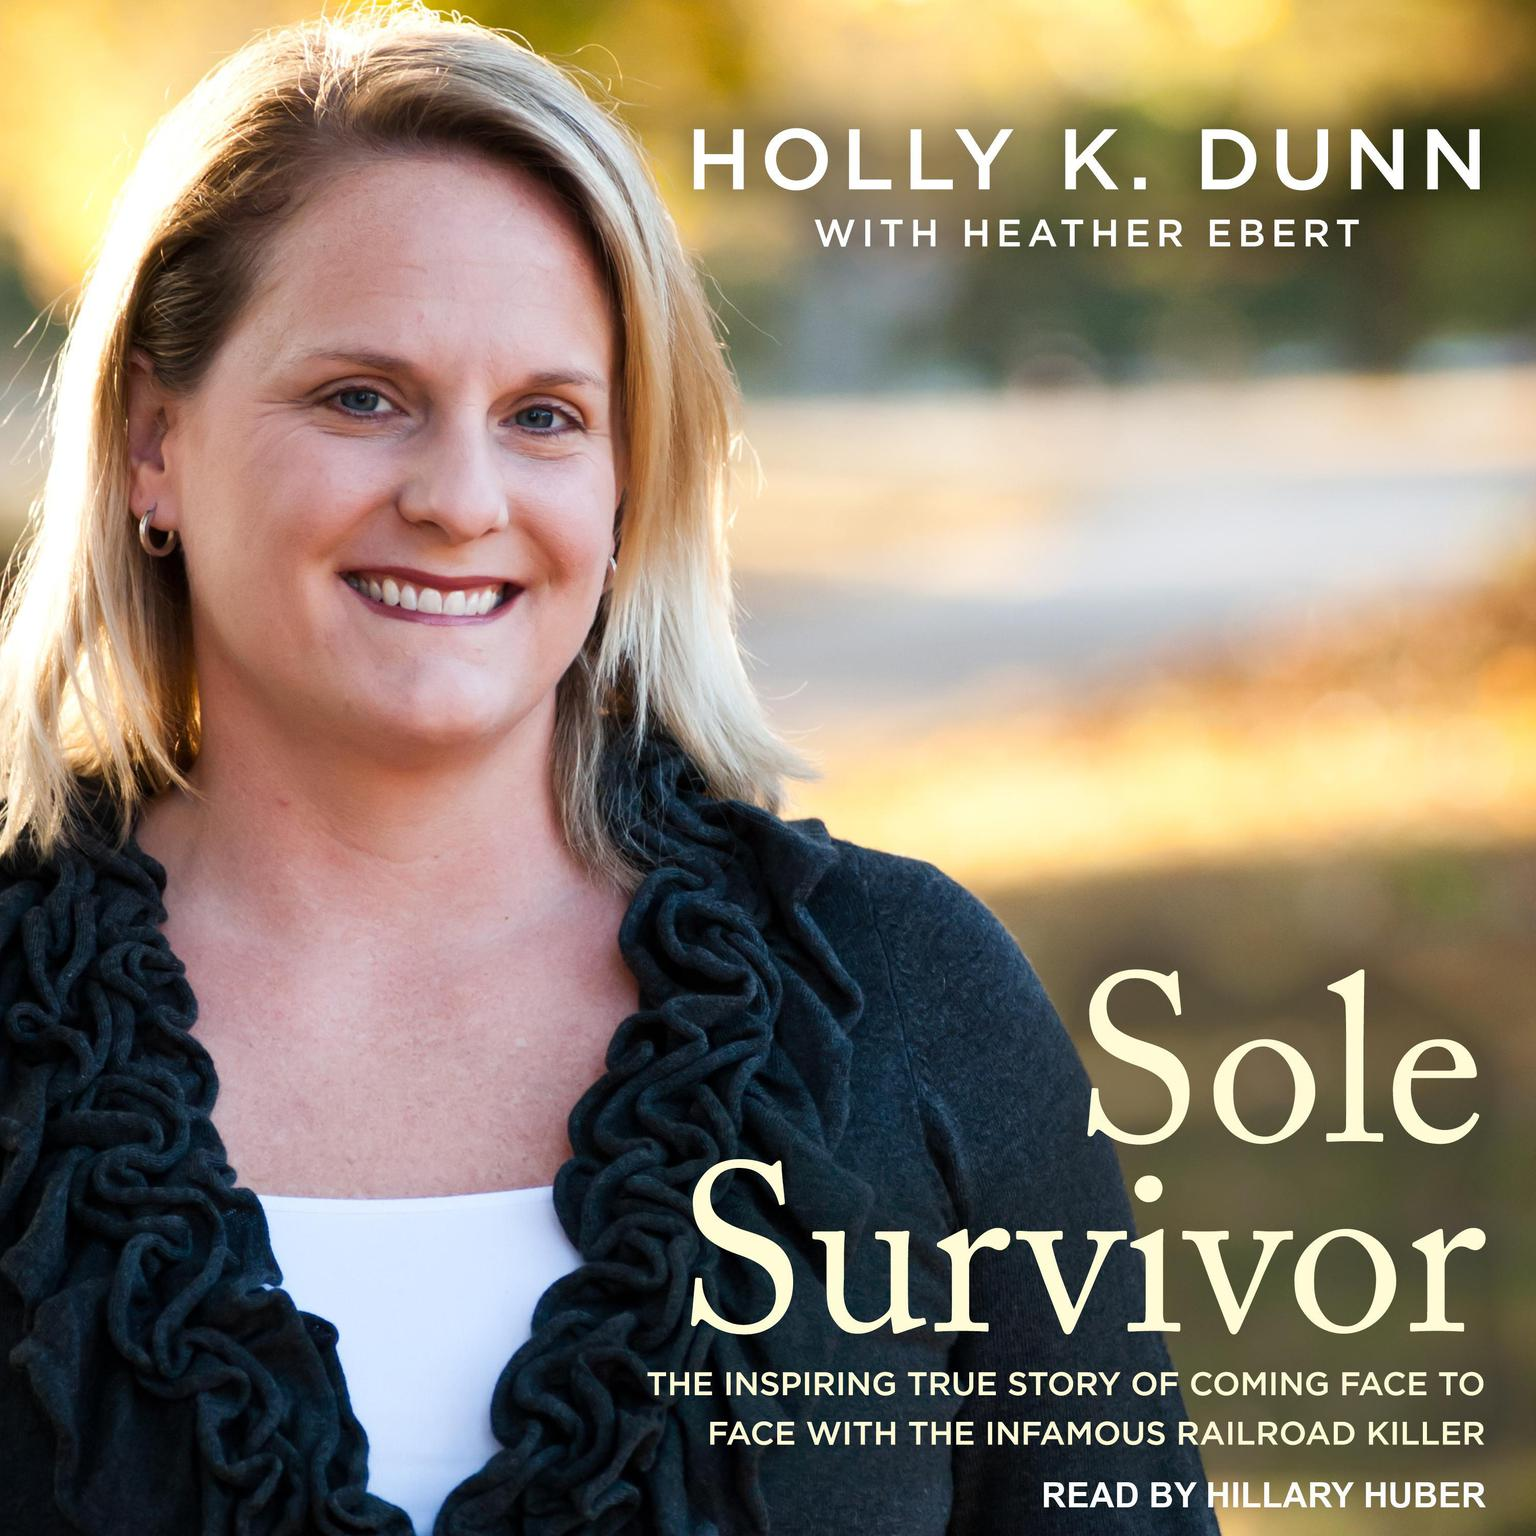 Sole Survivor: The Inspiring True Story of Coming Face to Face with the Infamous Railroad Killer Audiobook, by Holly Dunn